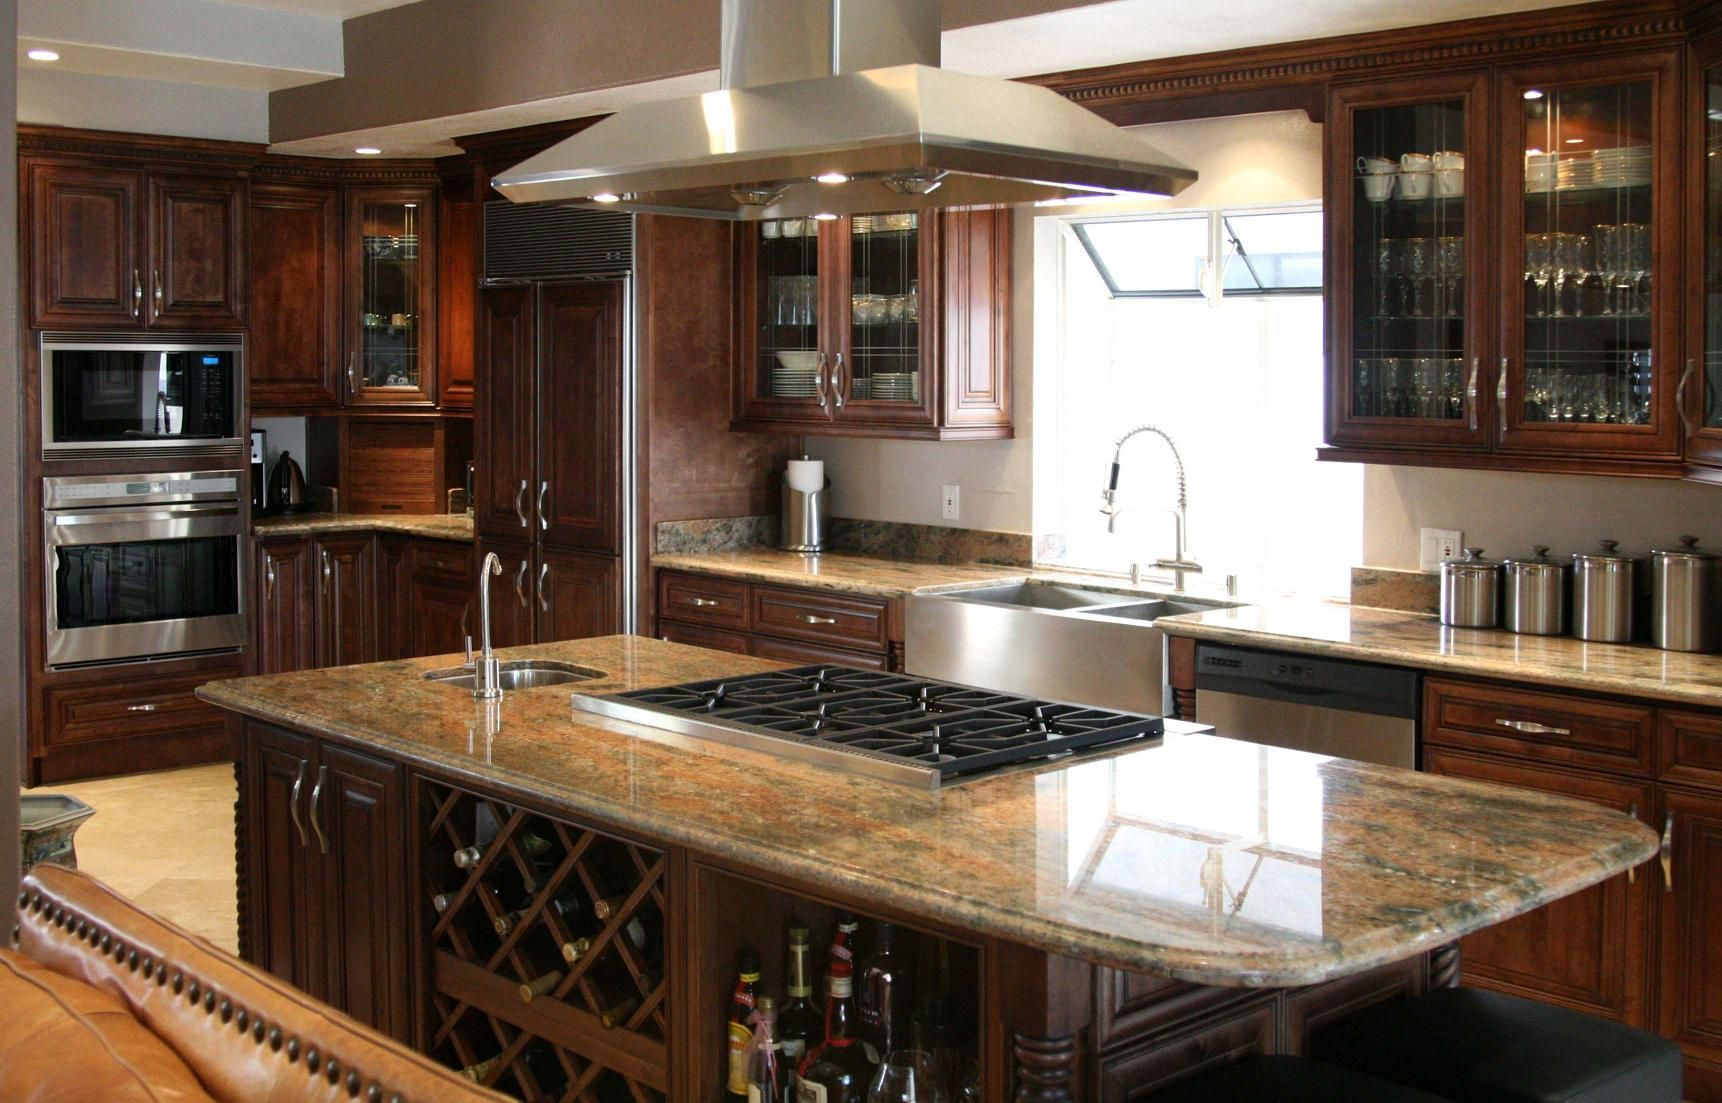 Latest Kitchen Designs 2013  Cabinetsto Restore Reface Or Classy Kitchen Design 2013 Inspiration